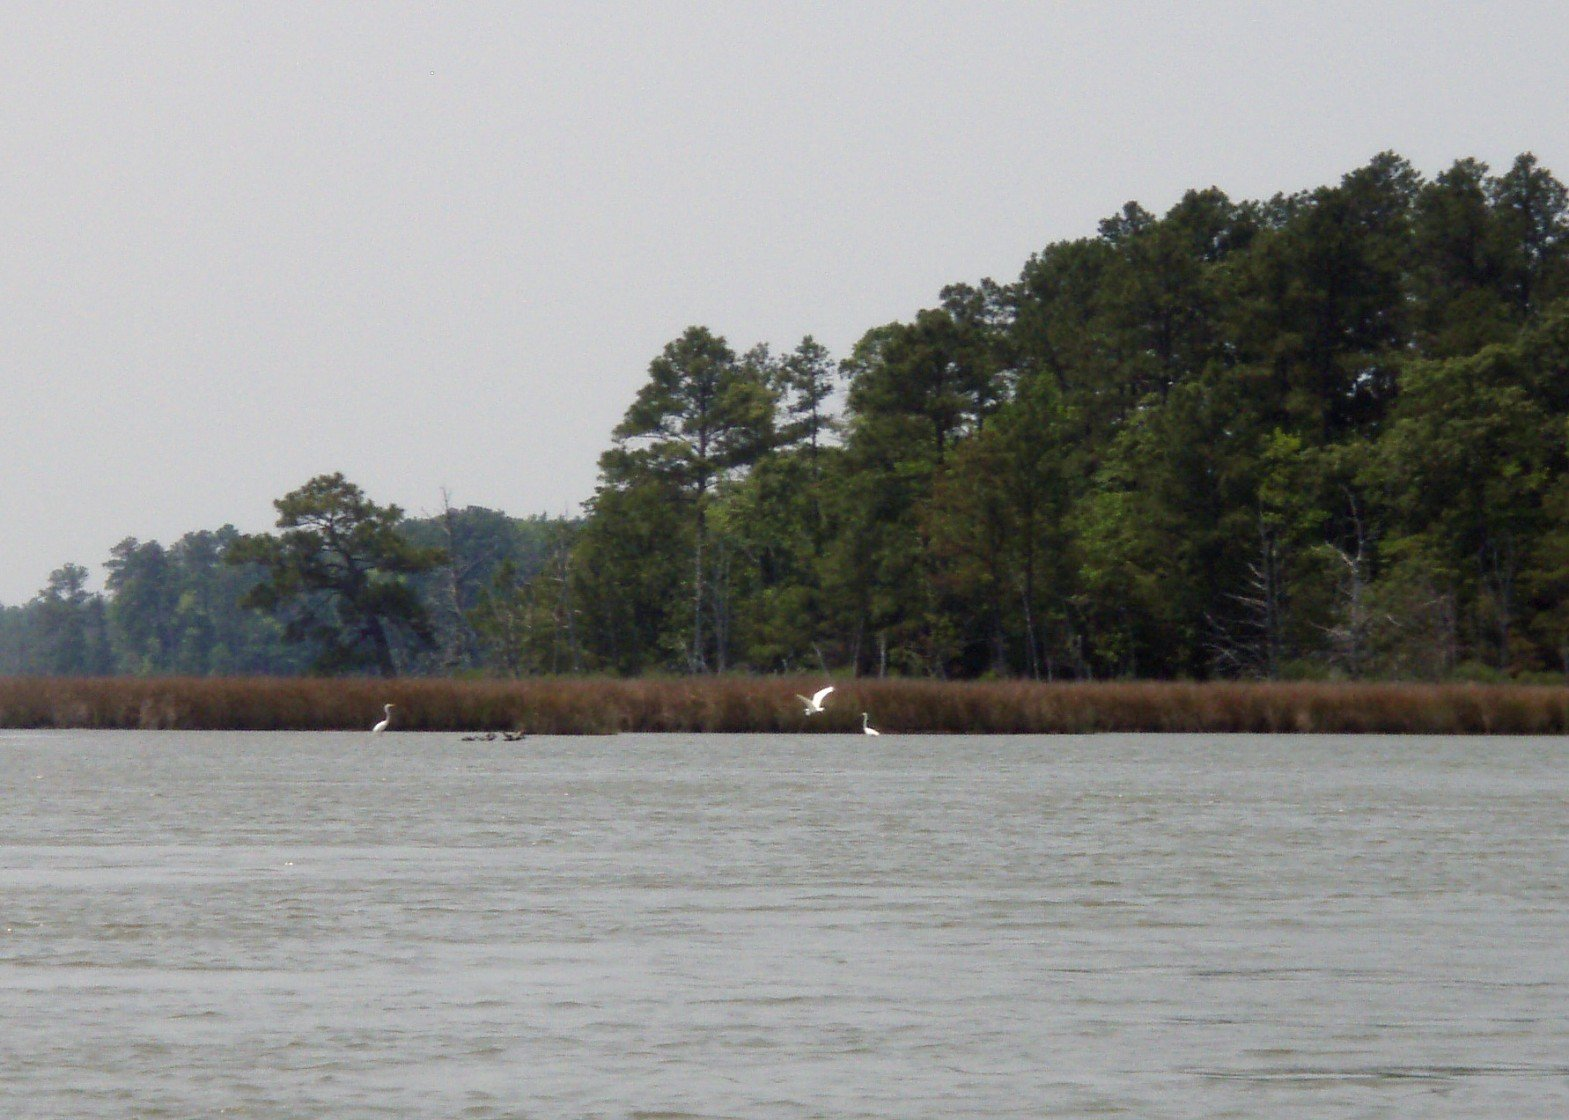 Taylor's Island Wildlife Management Area